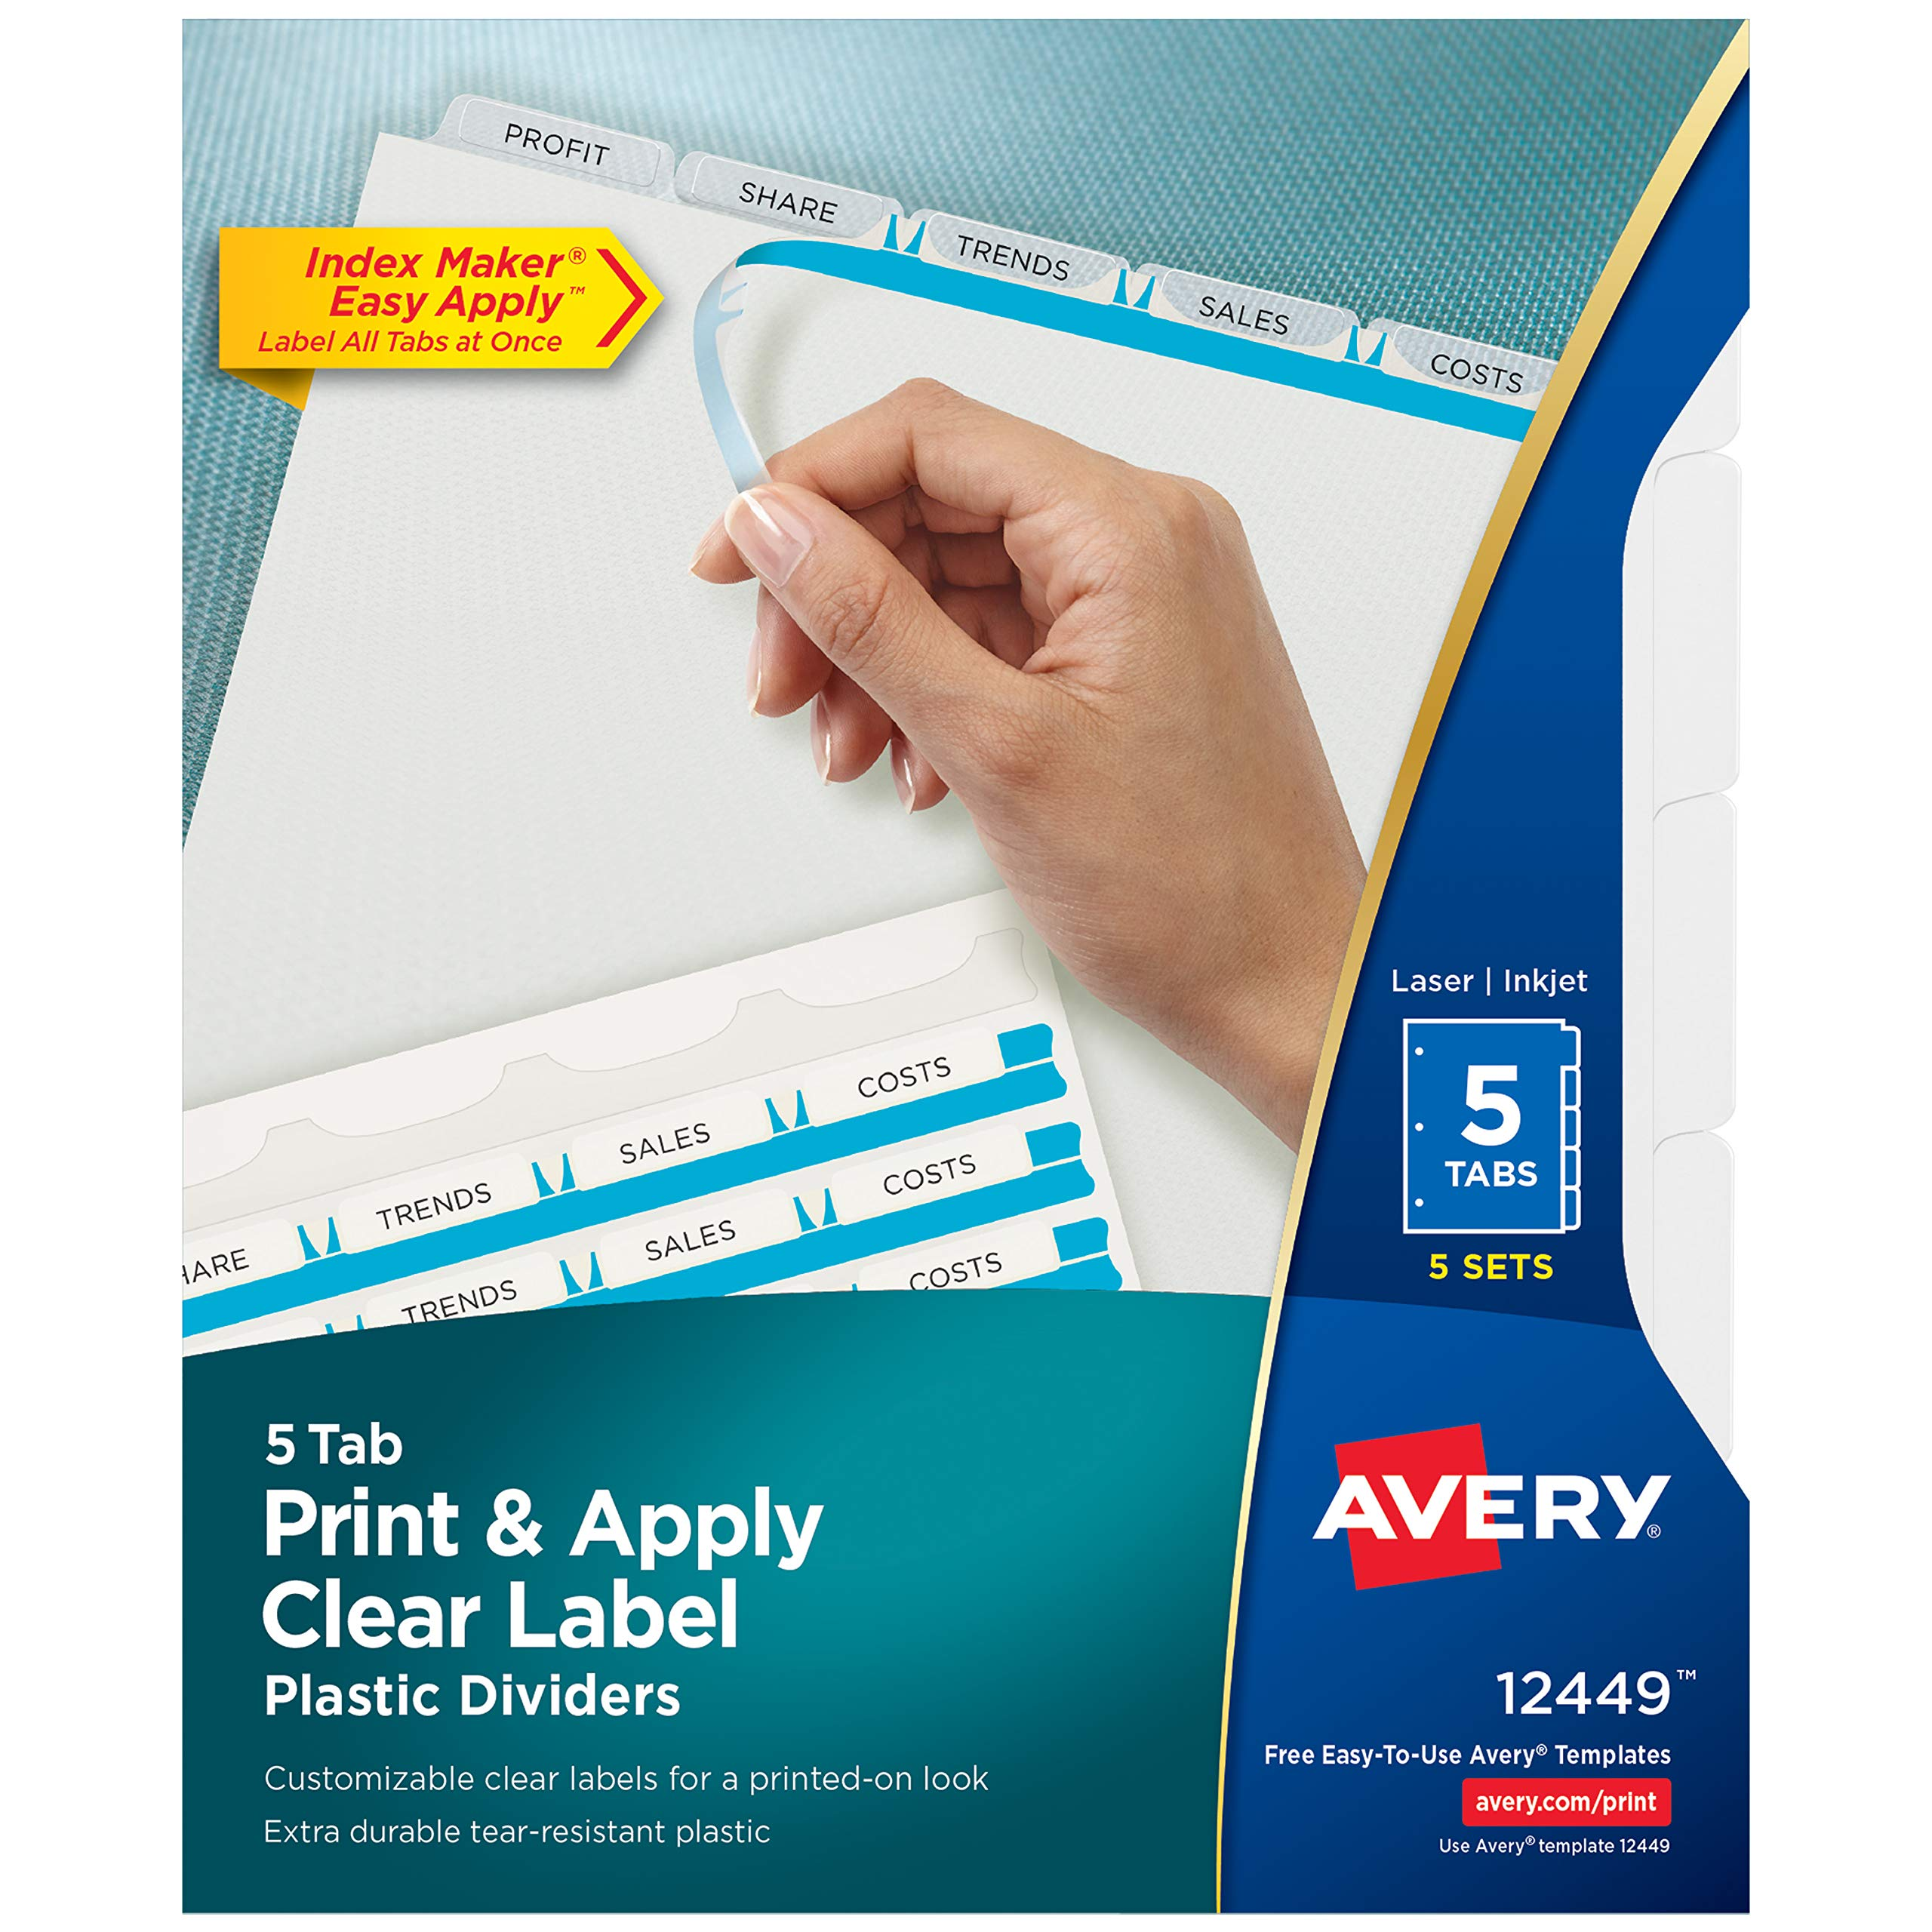 Avery 5-Tab Plastic Dividers, Easy Print & Apply Clear Label Strip, Index Maker, 5 Sets (12449) by AVERY